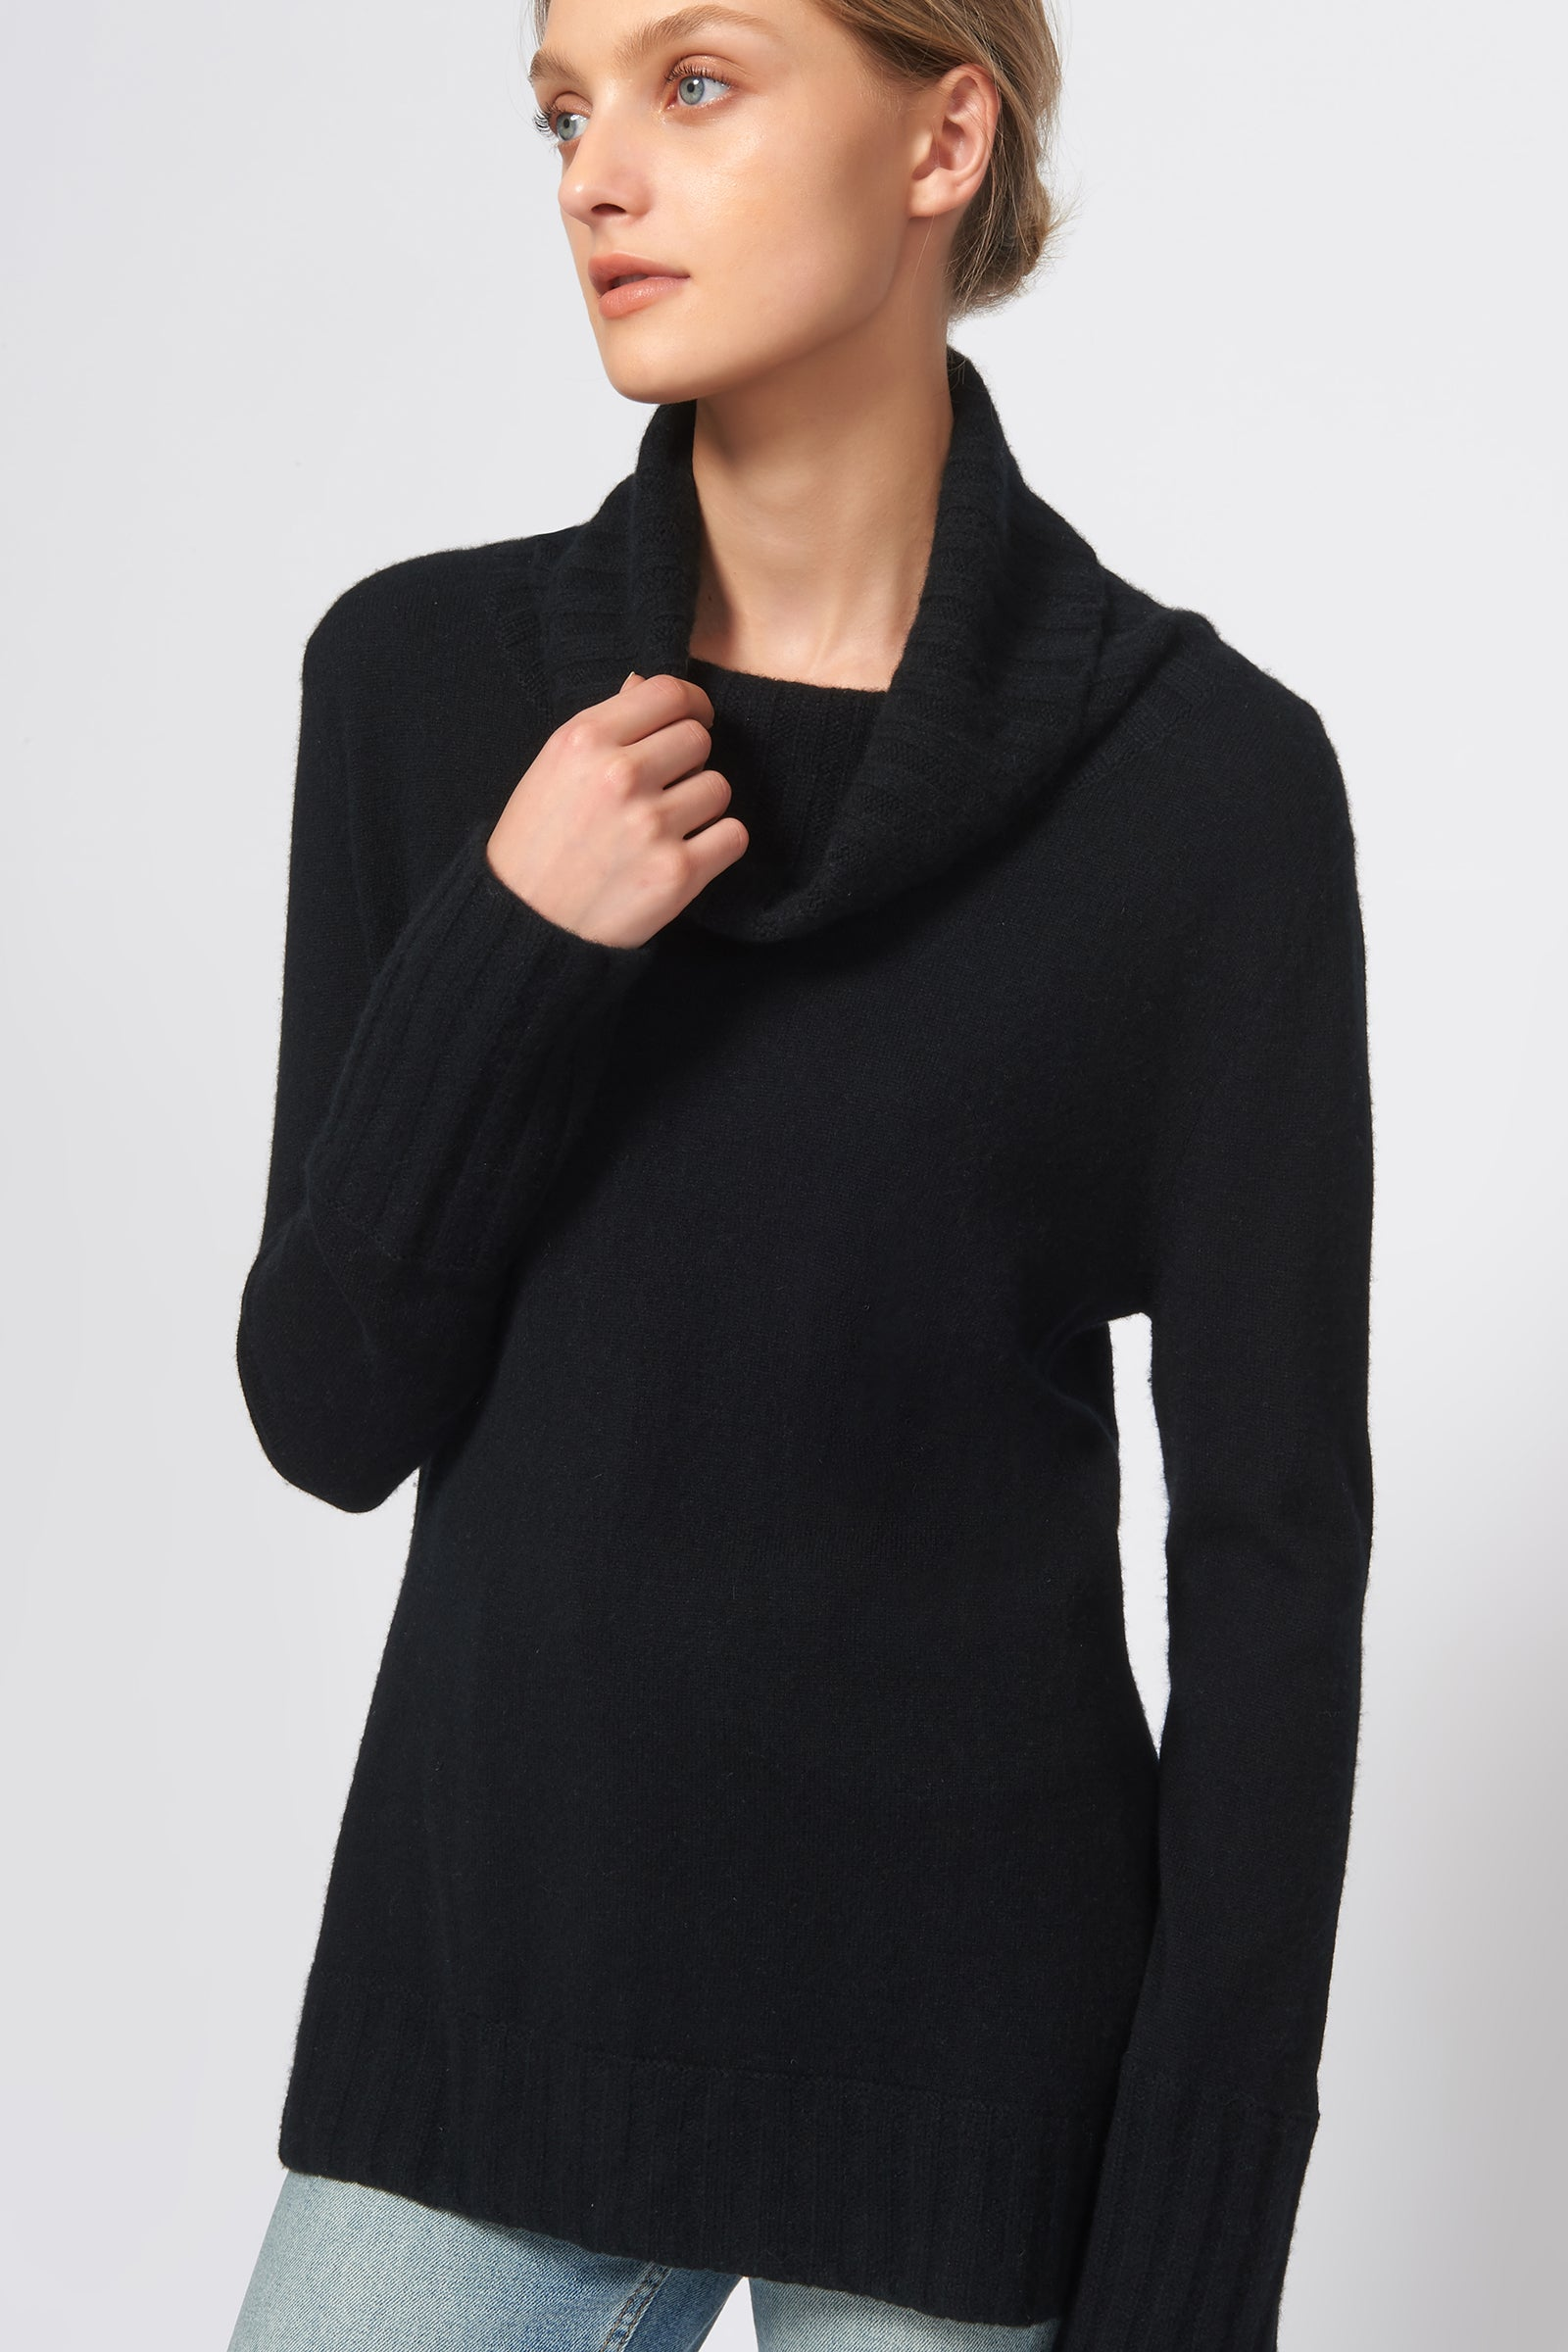 Kal Rieman Cashmere Cowel T-Neck in Black on Model Detail View